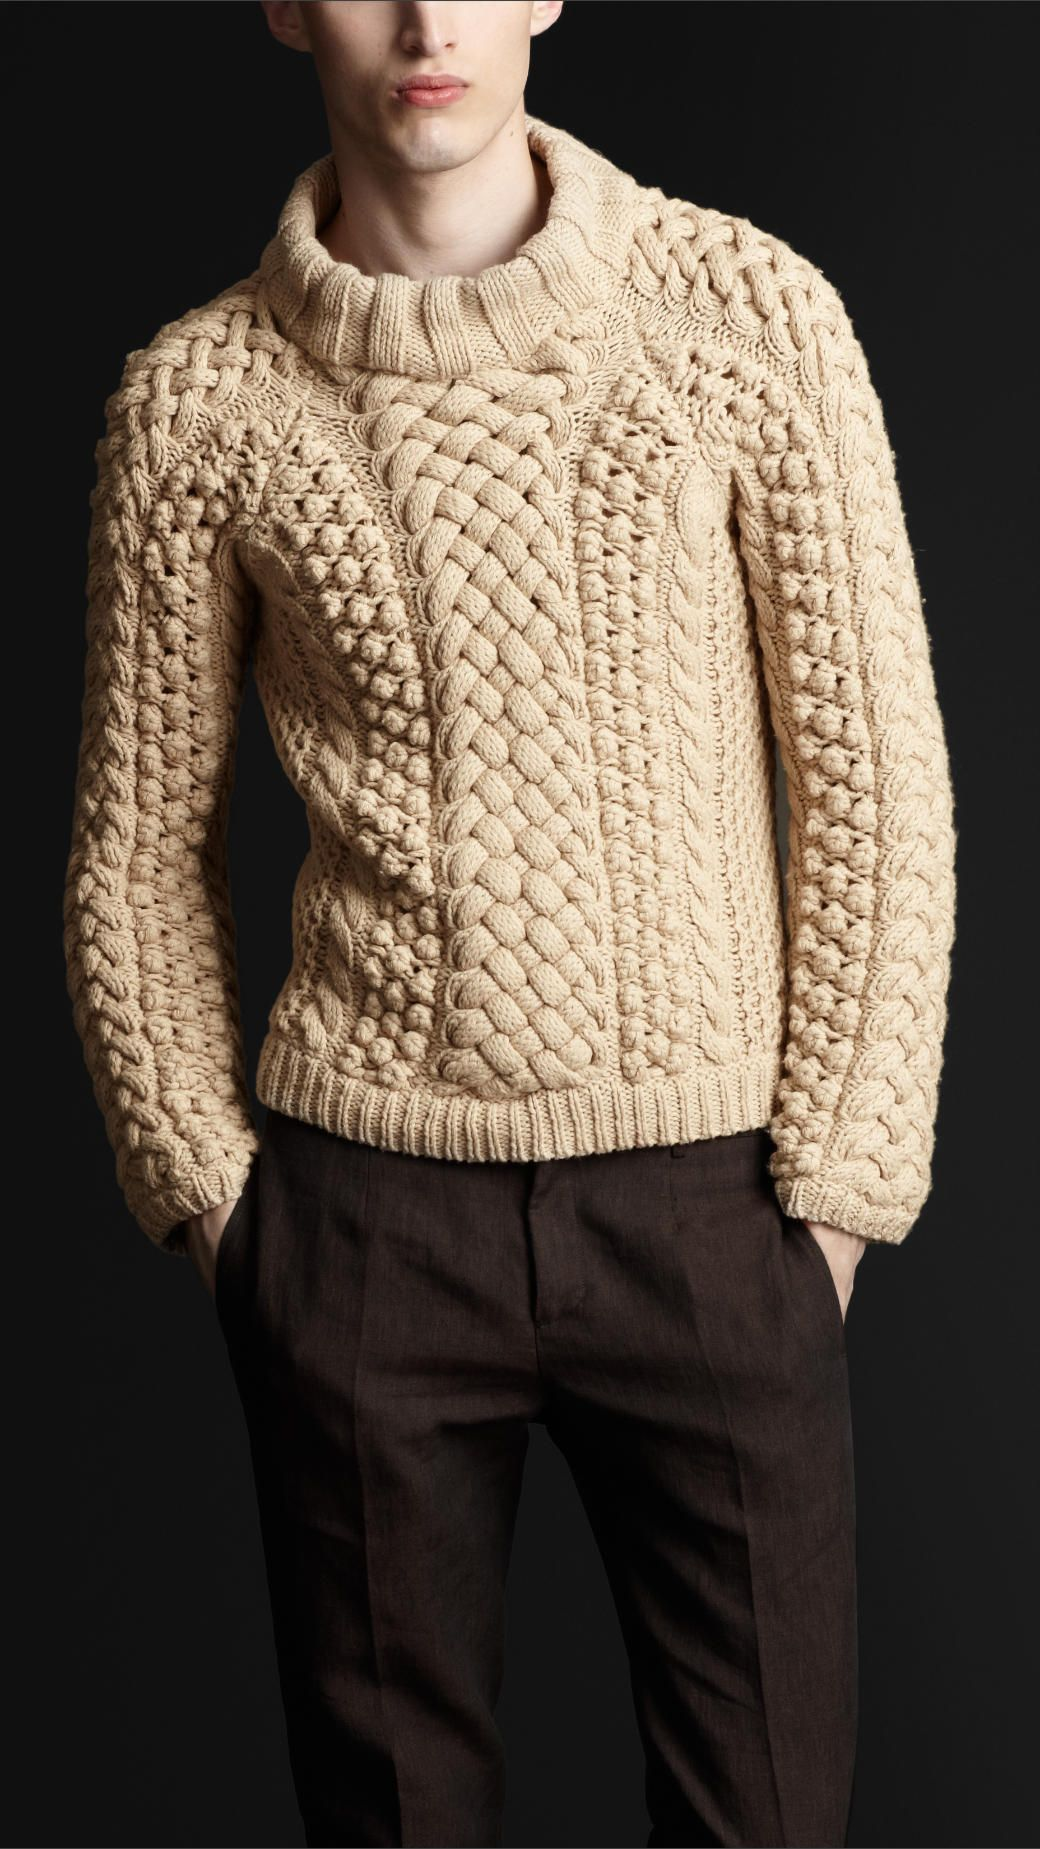 Men's Knitted Sweaters & Cardigans | Burberry prorsum, Cable ...